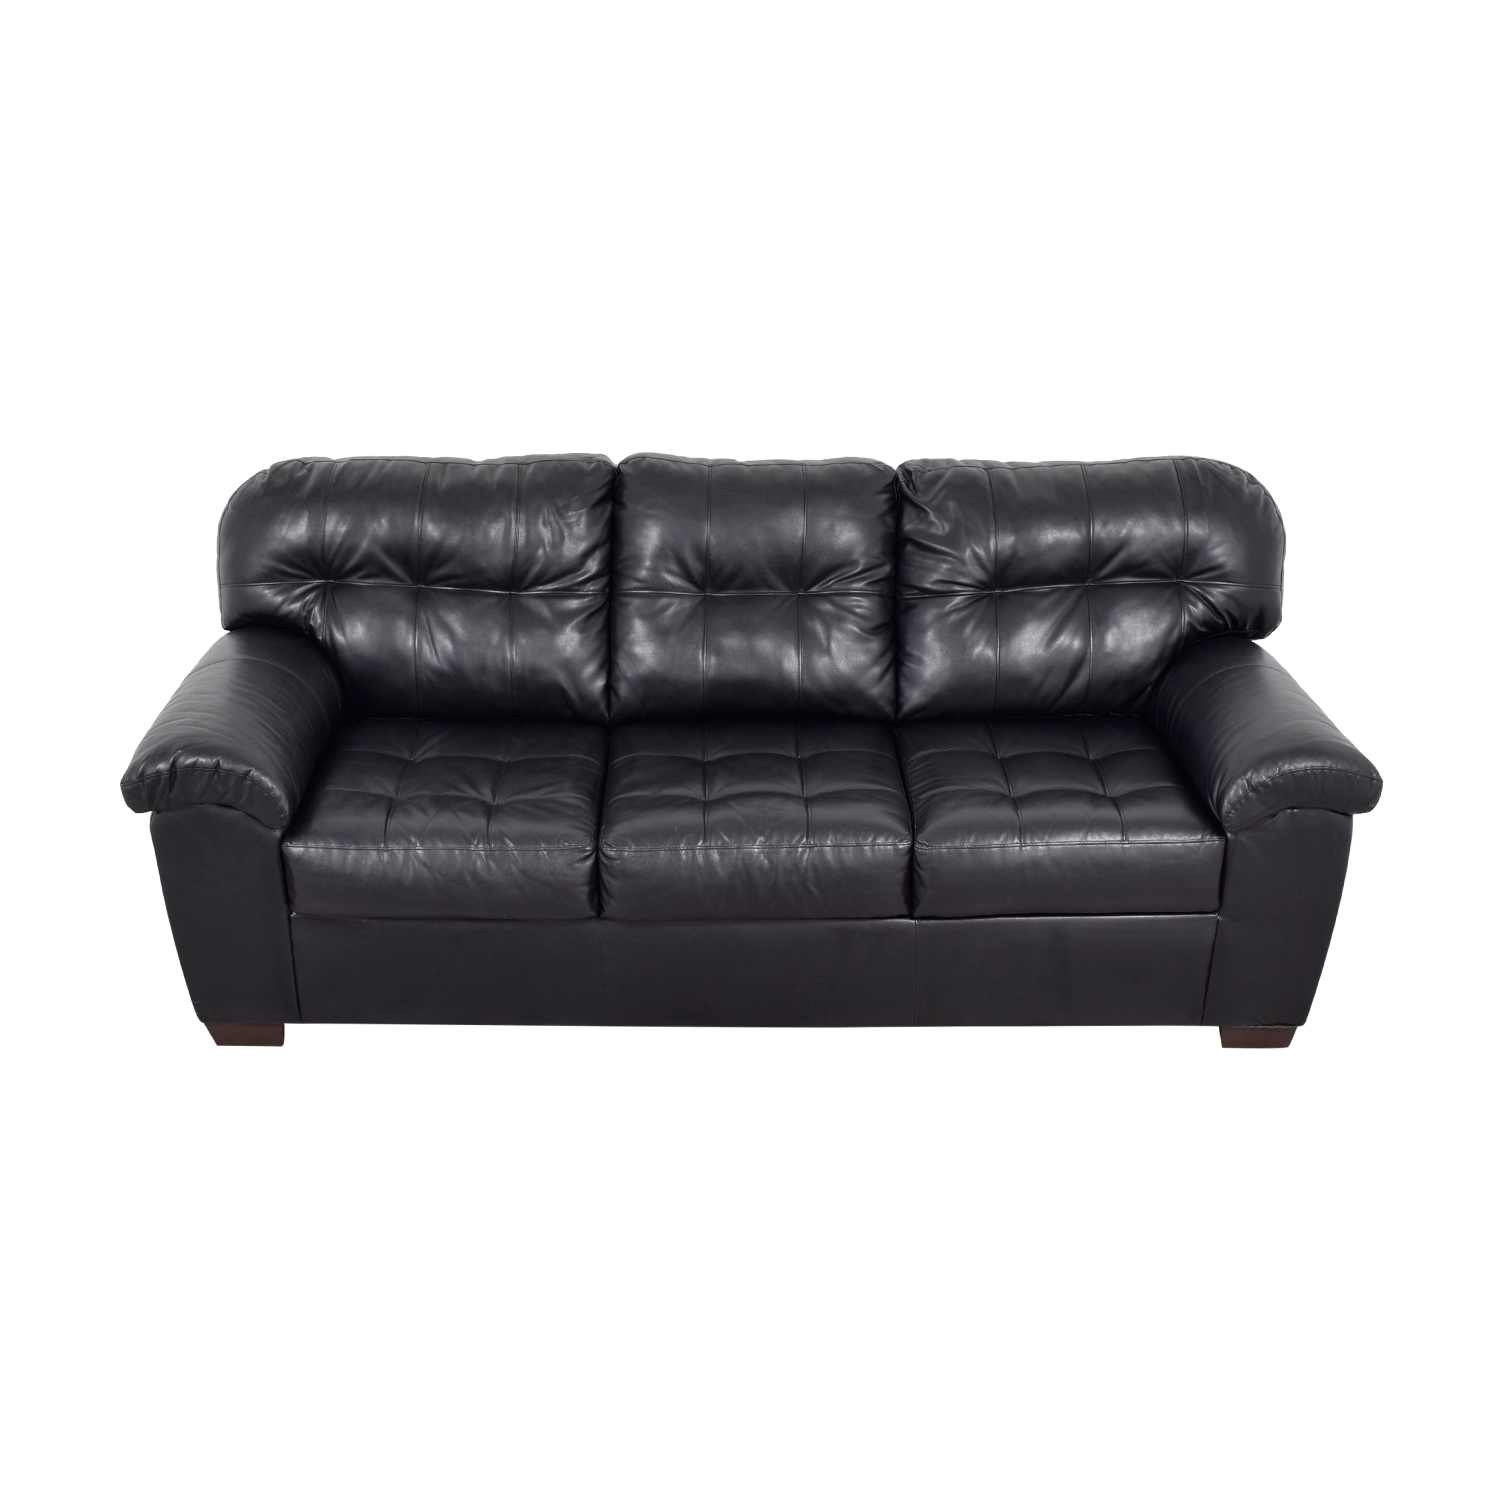 Black Tufted Leather Three-Cushion Couch / Sofas